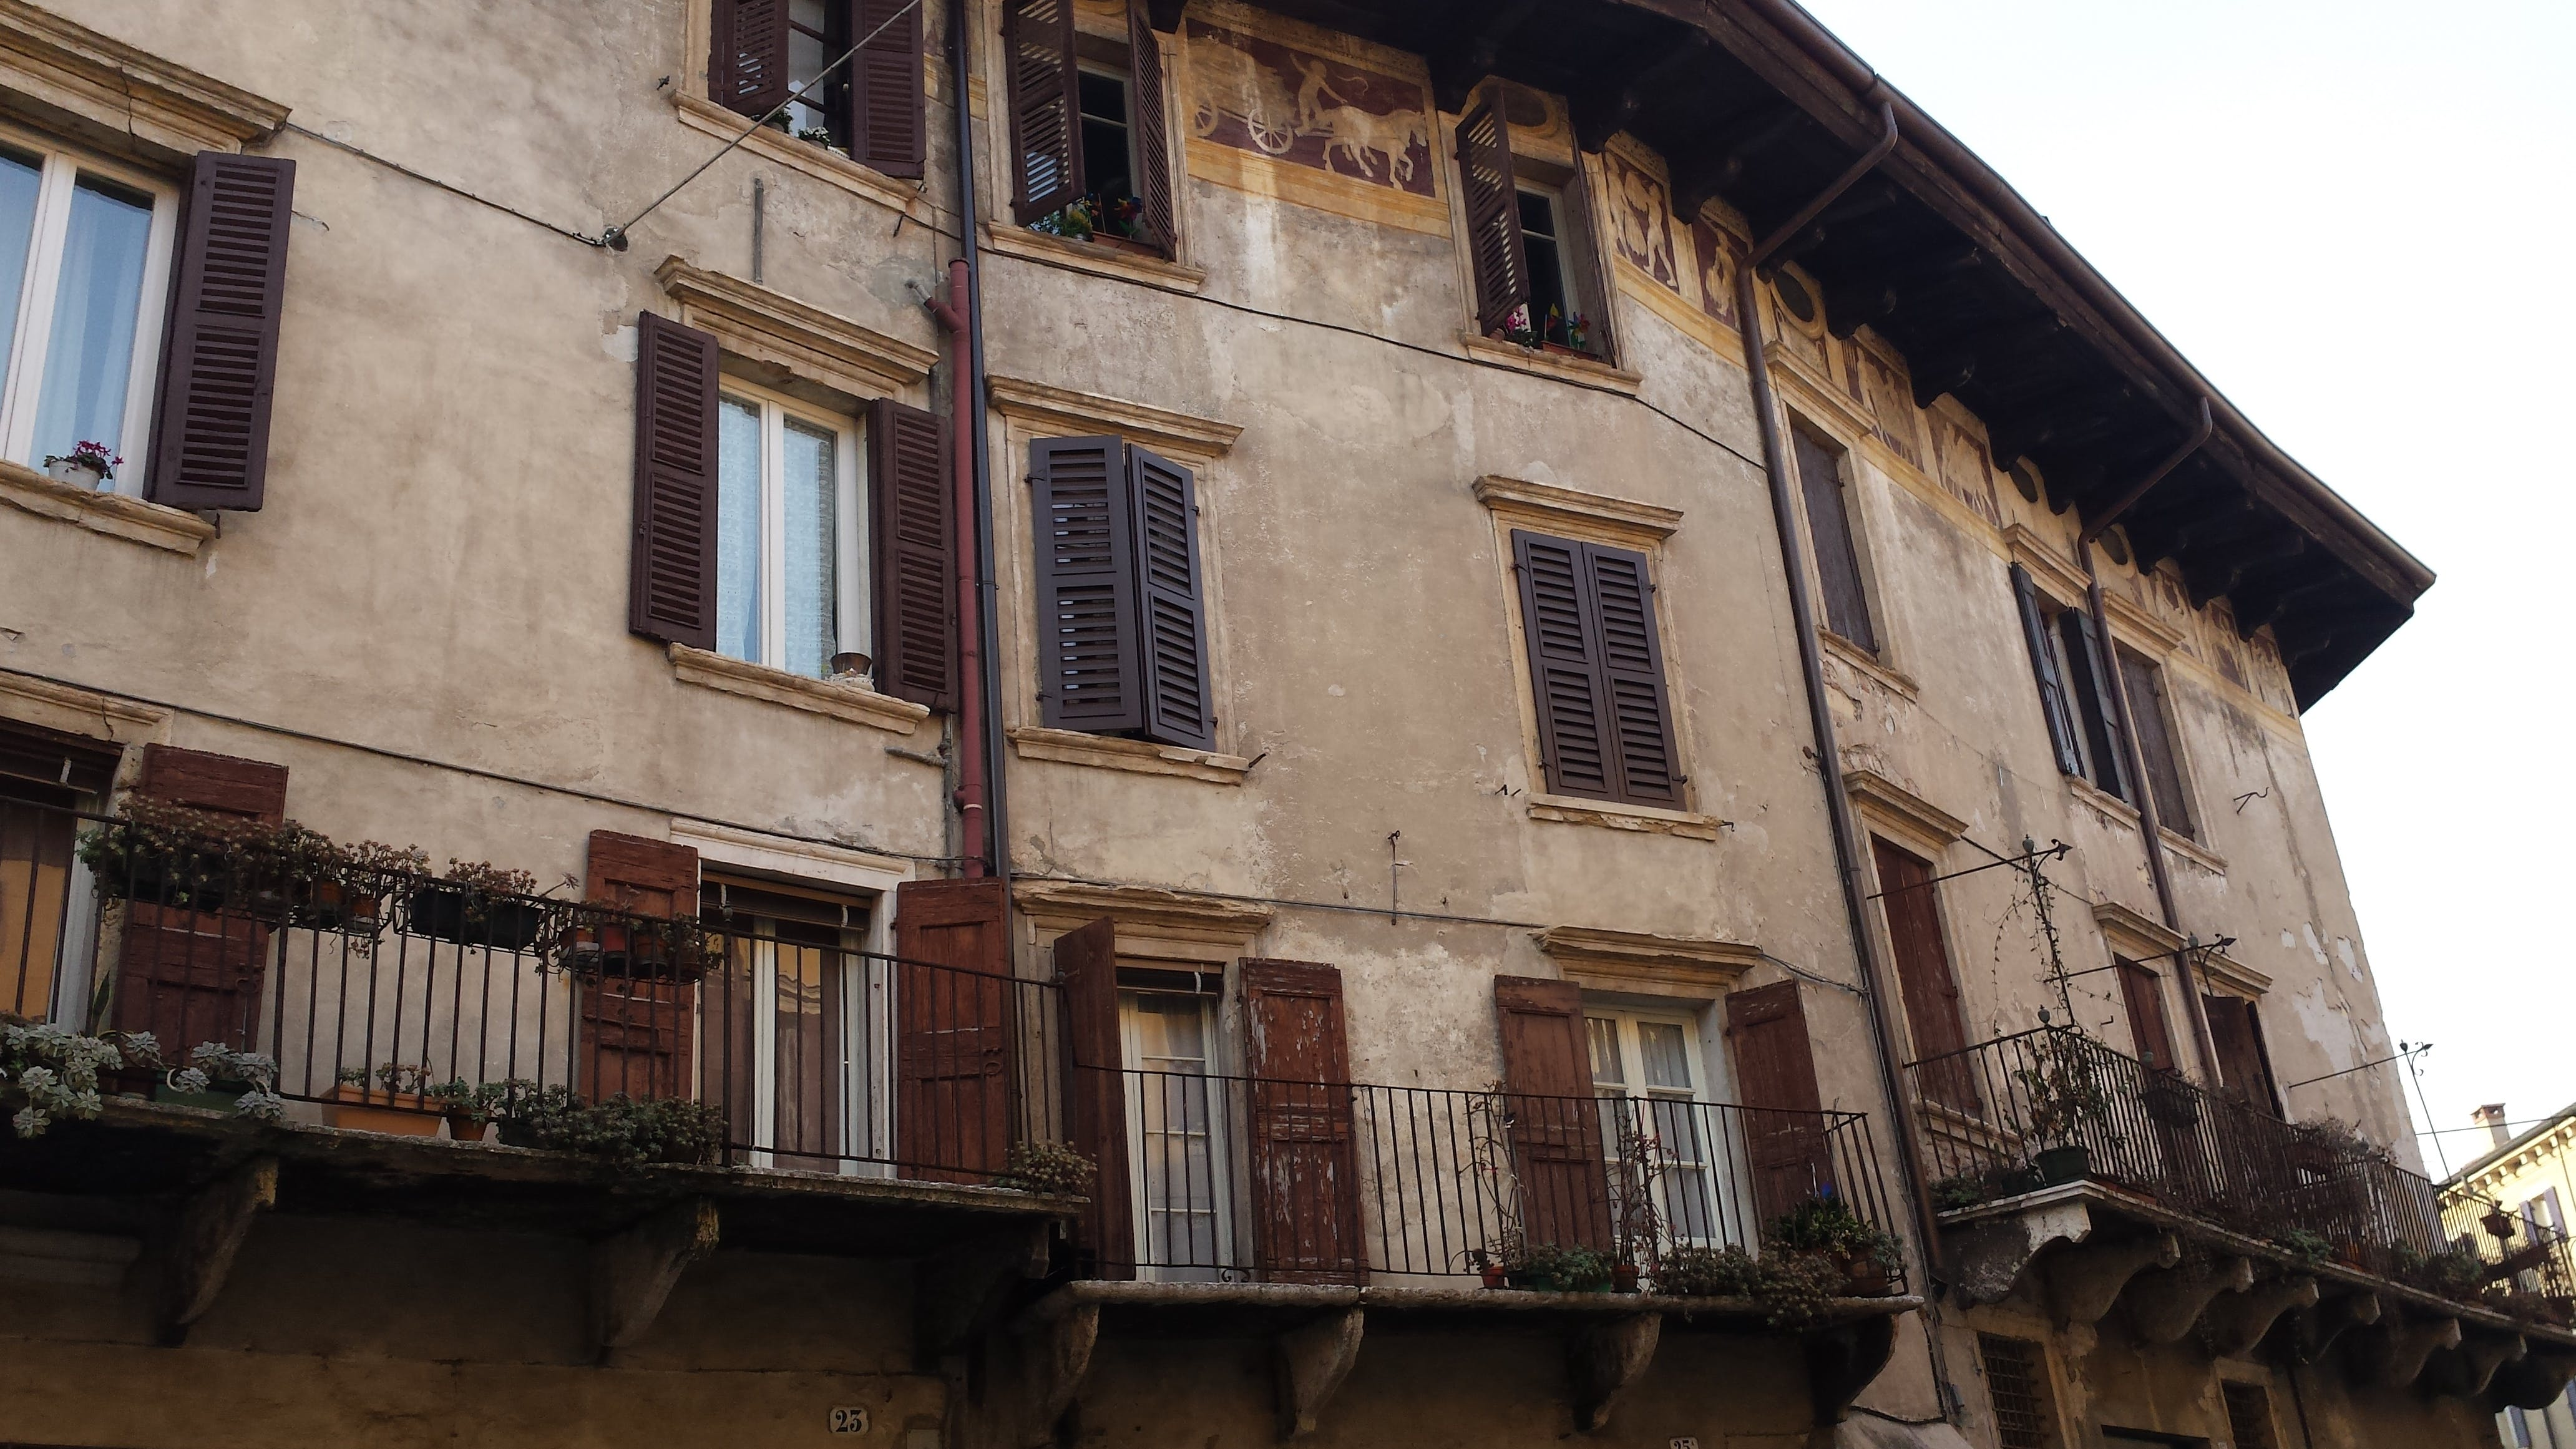 Free stock photo of old building, verona, window shutters